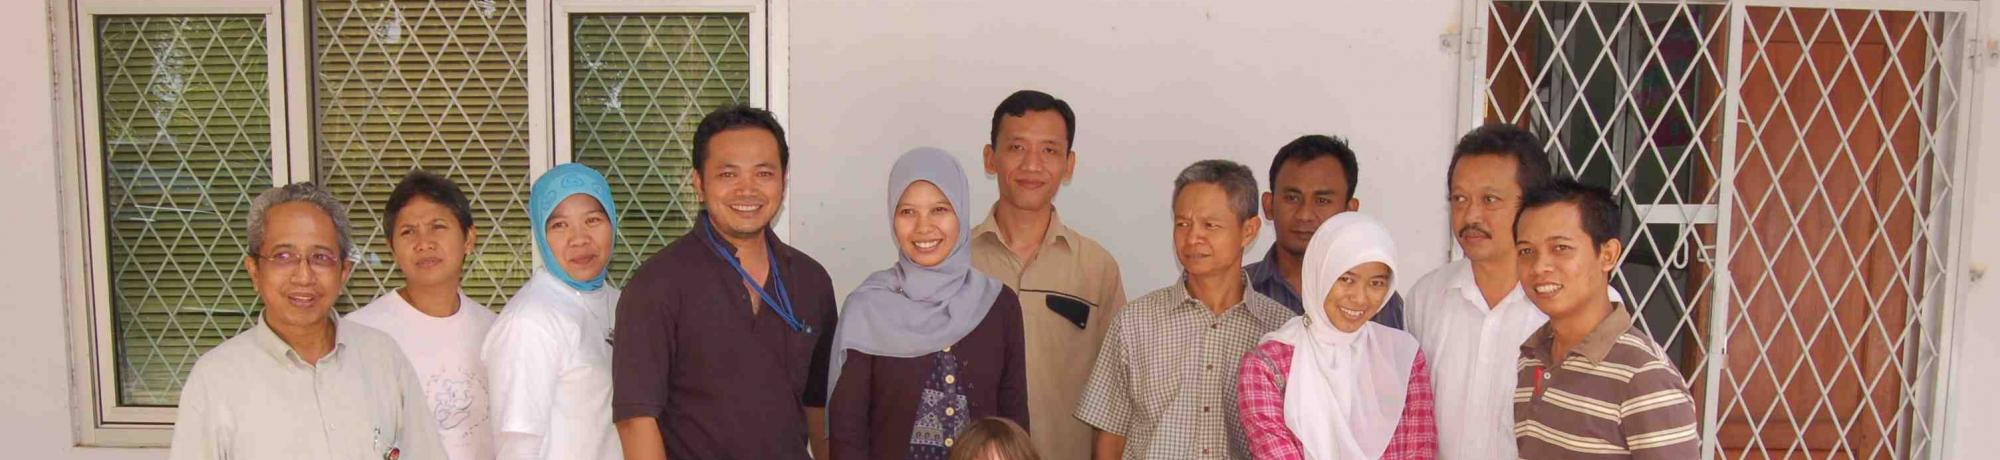 The AP2 team at FORDA, Ministry of Forestry, Bogor, Indonesia in 2009.